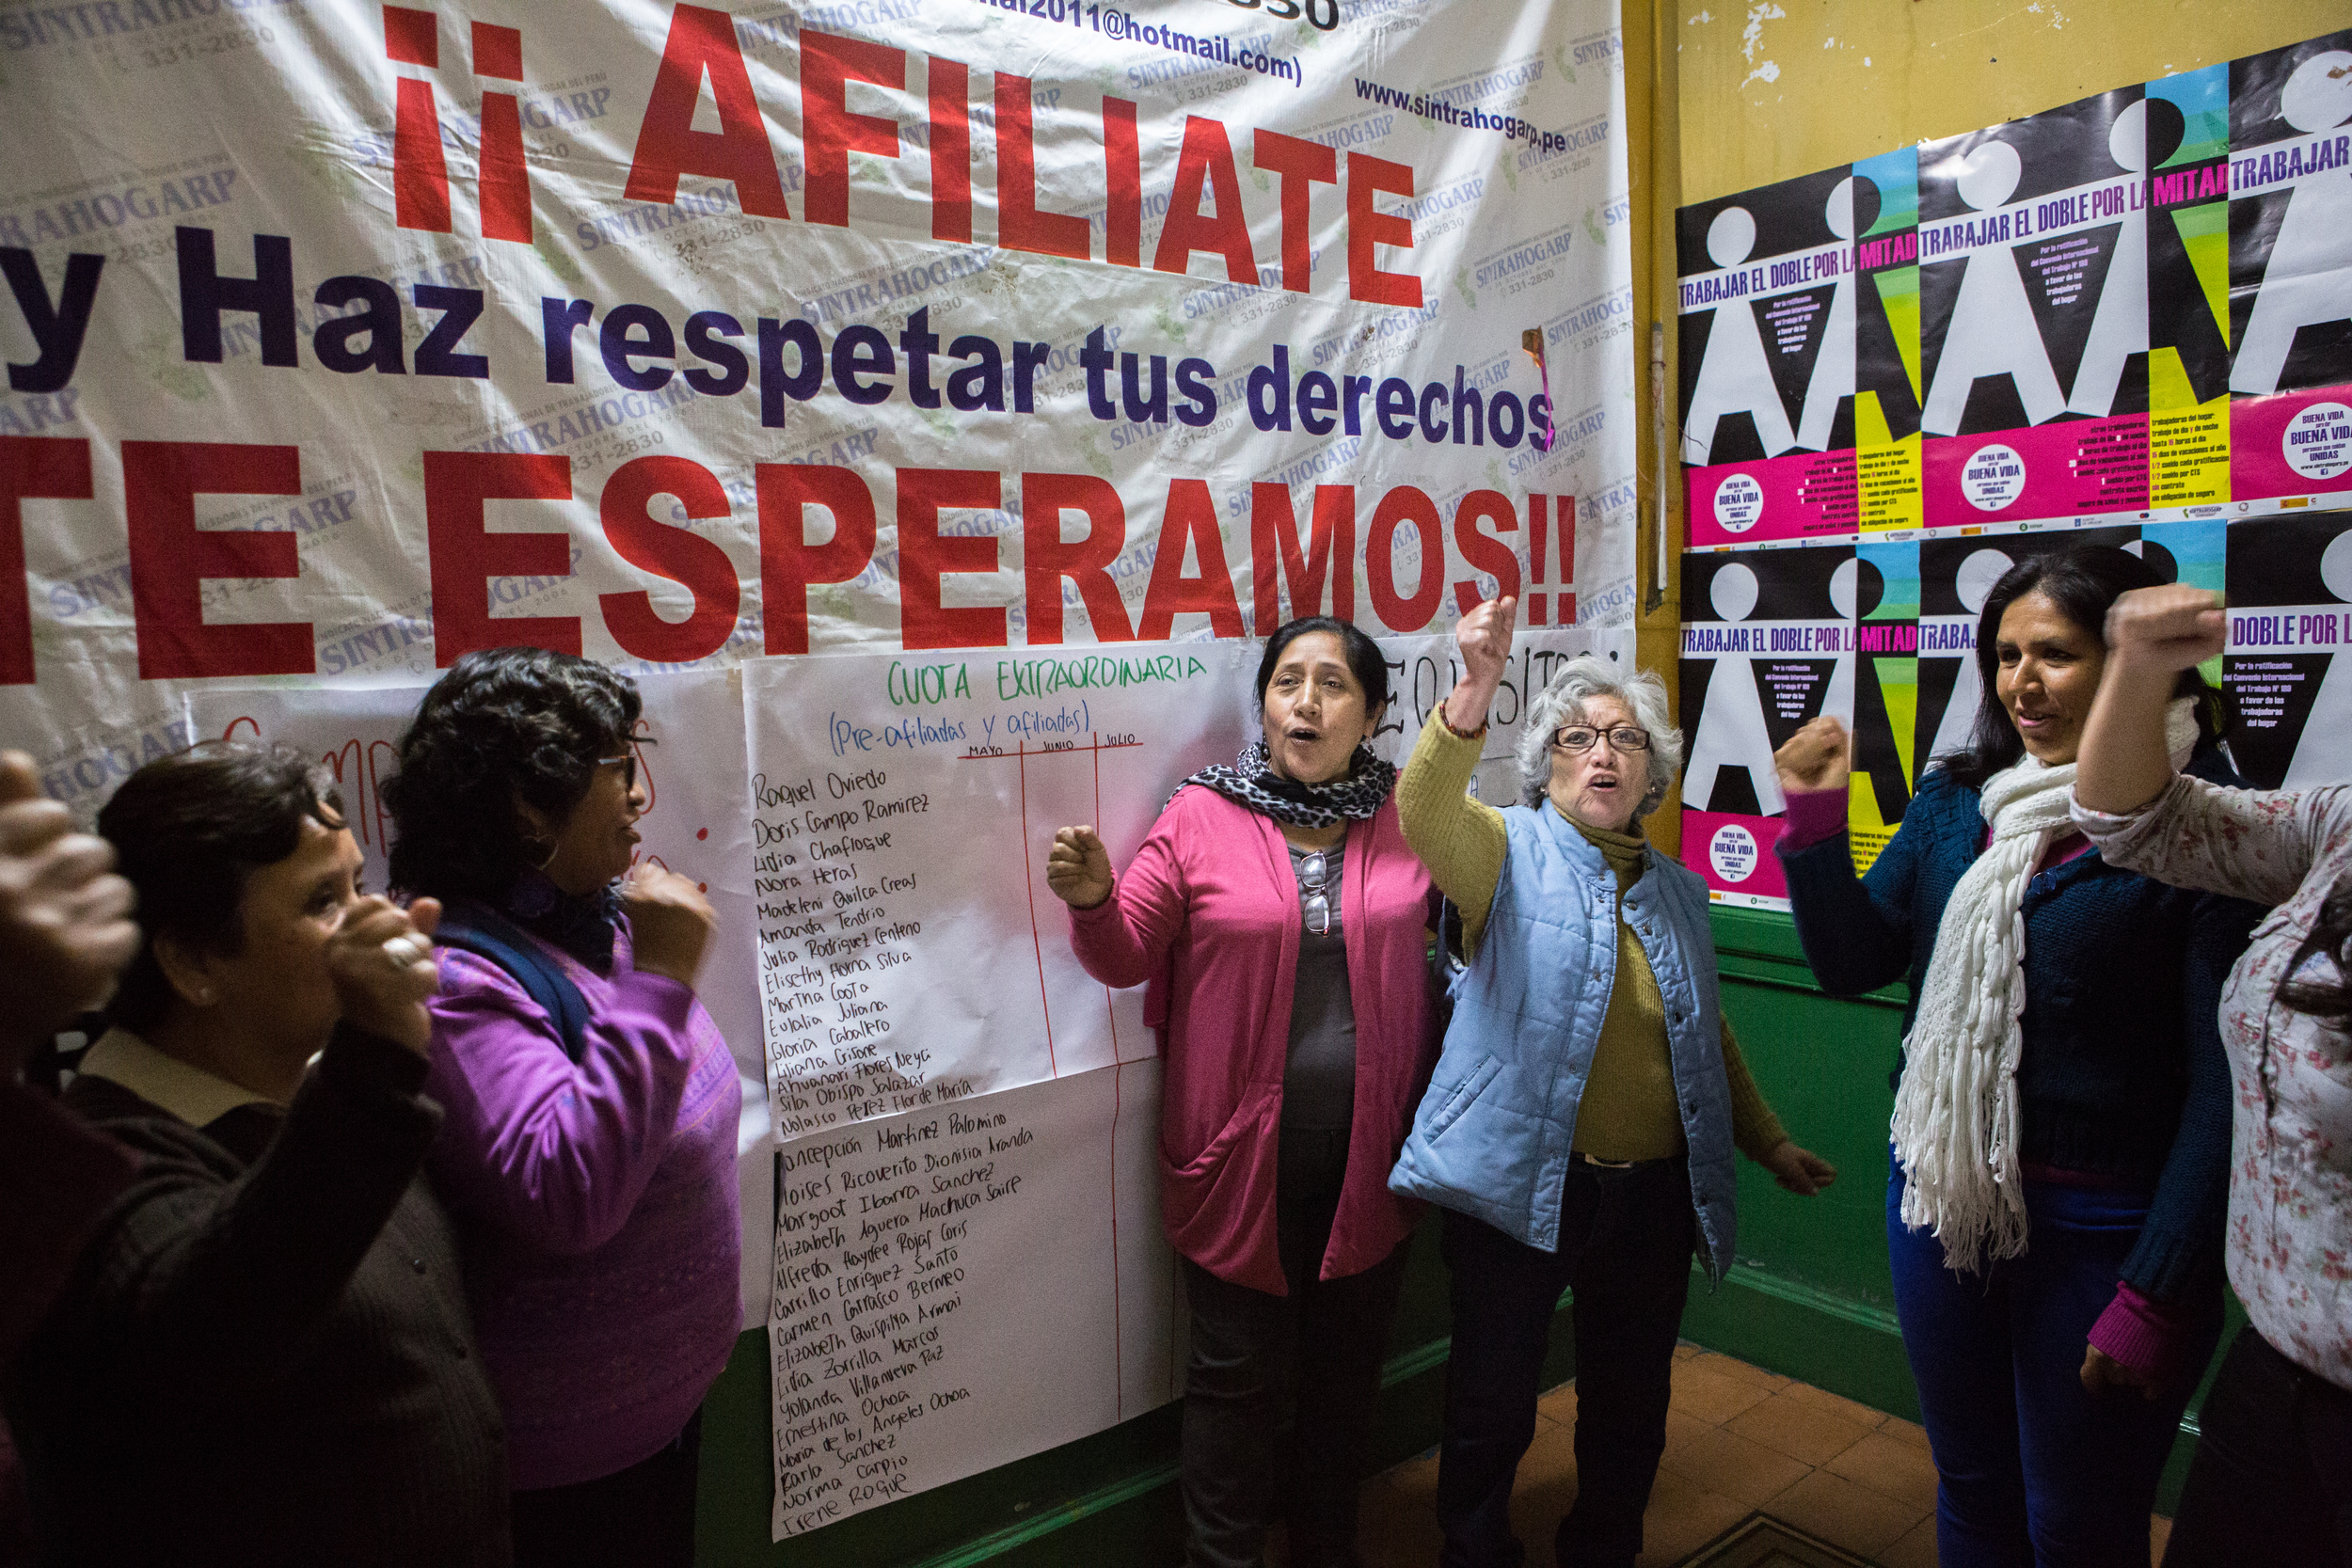 August 2, 2015. LIMA, PERU. Paulina Luza (Center) Secretary General of SINTRAHOGARP (Sindicato de Trabajadores del Hogar del Peru) at its headquarters with members of the organization. SINTRAHOGARP (Sindicato de Trabajadores del Hogar del Peru). SINTRAHOGARP is one of several organizations of informal workers in Lima that works closely with WIEGO (Women in Informal Employment: Globalizing and Organizing) in several initiatives, including to improve capacities of membership-based organizations through training in advocacy, communications, regulatory and legal frame work, occupational health and safety , and social inclusion campaigns. (Photo by Juan Arredondo/Reportage by Getty Images)